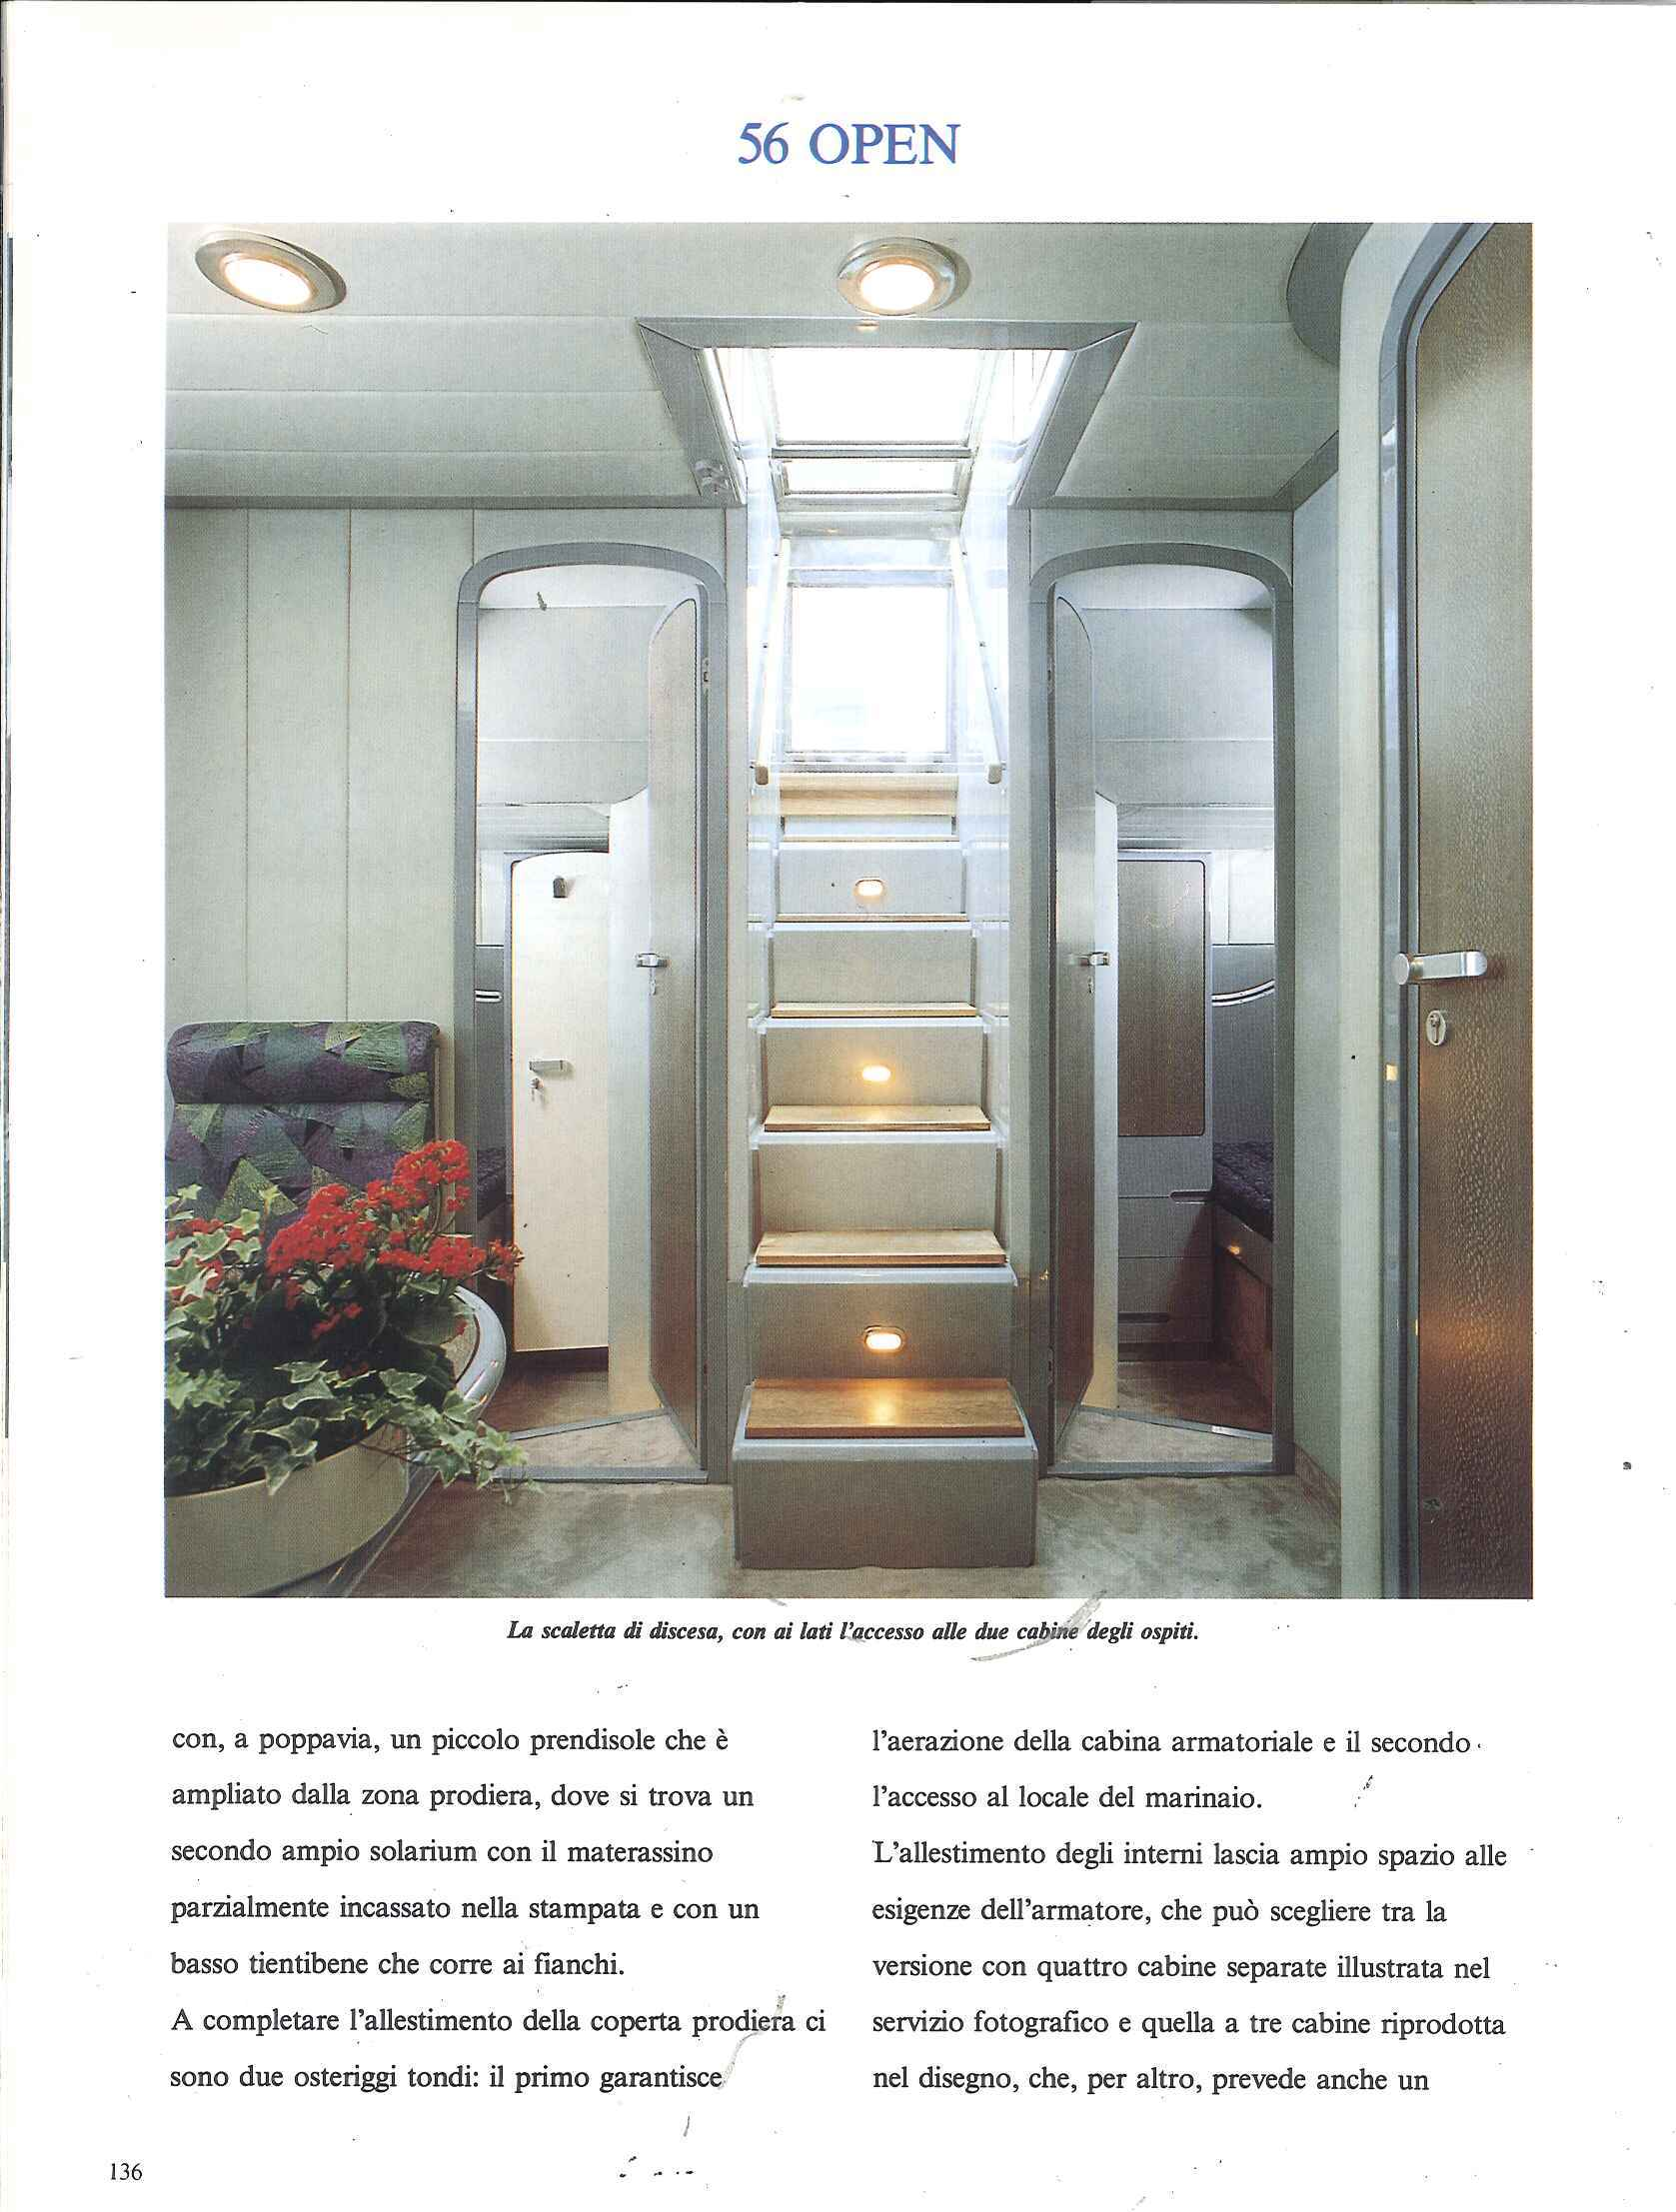 1989 04 PRESS DUAL CRAFT 56 OPEN UOMO MARE 129 (05).jpg